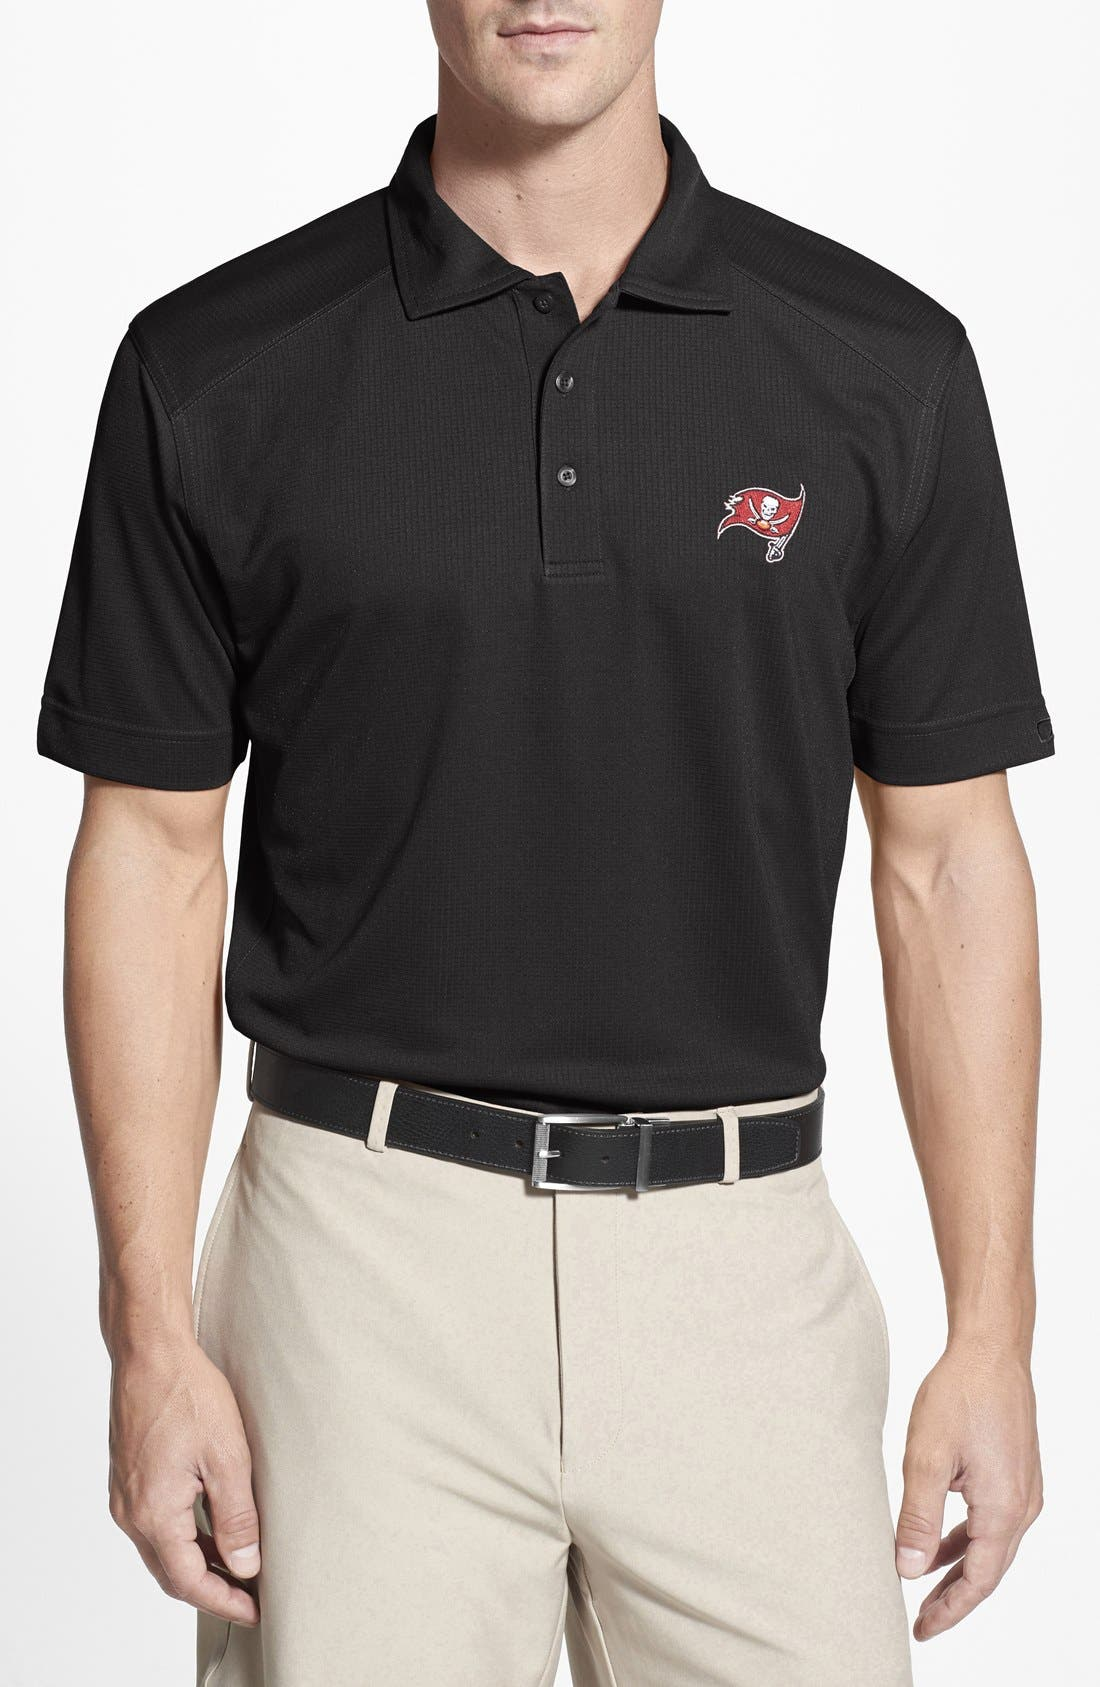 Tampa Bay Buccaneers - Genre DryTec Moisture Wicking Polo,                         Main,                         color, Black